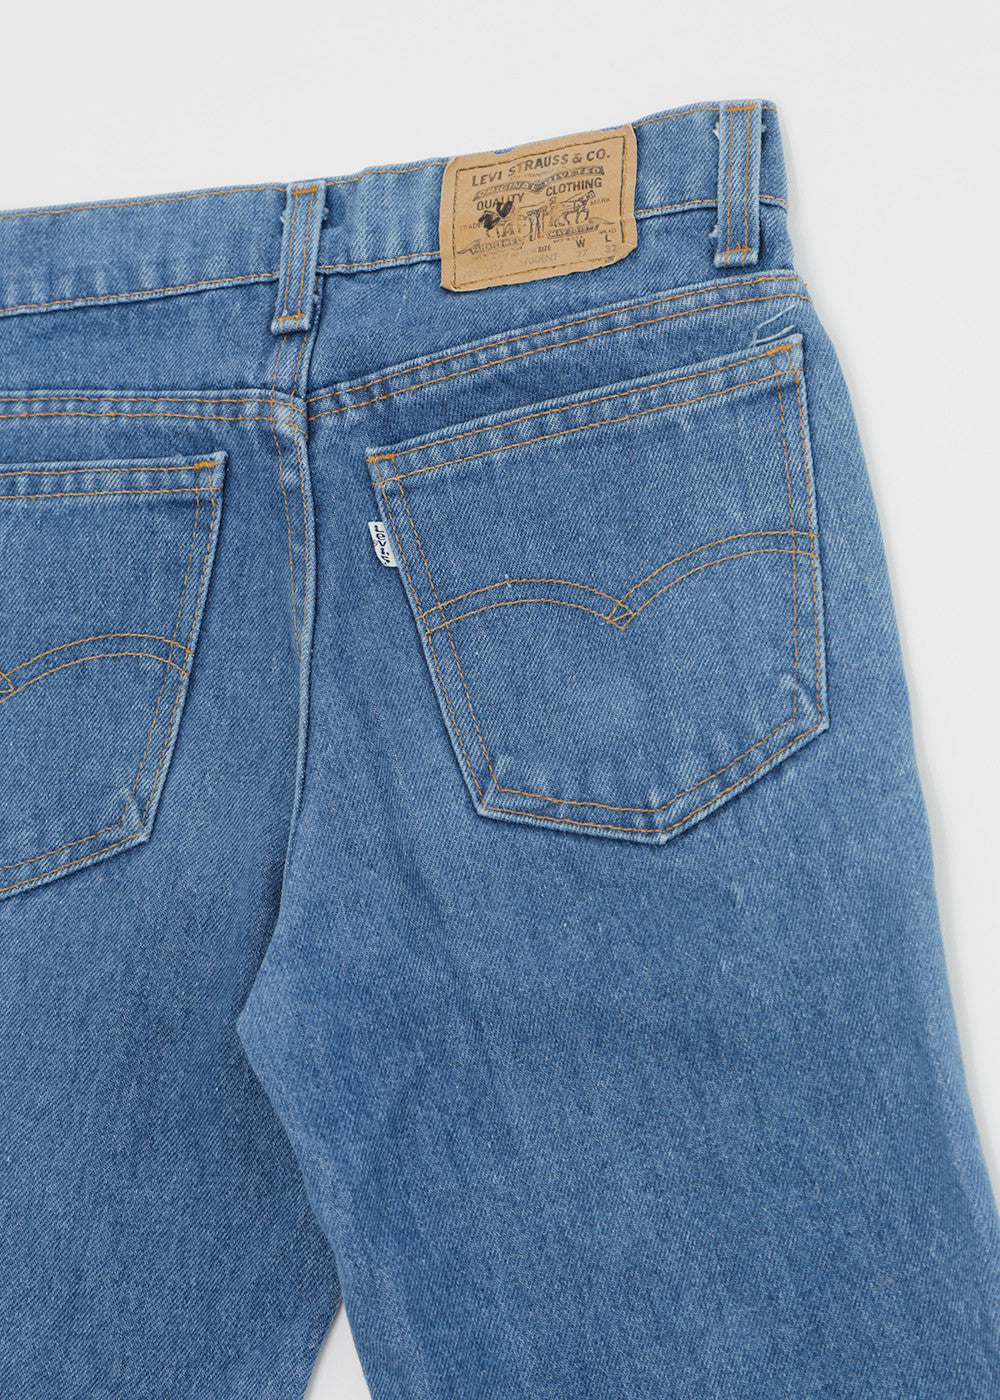 Denim Refinery Vintage Levi's Student Jeans — Shop sustainable fashion and slow fashion at New Classics Studios